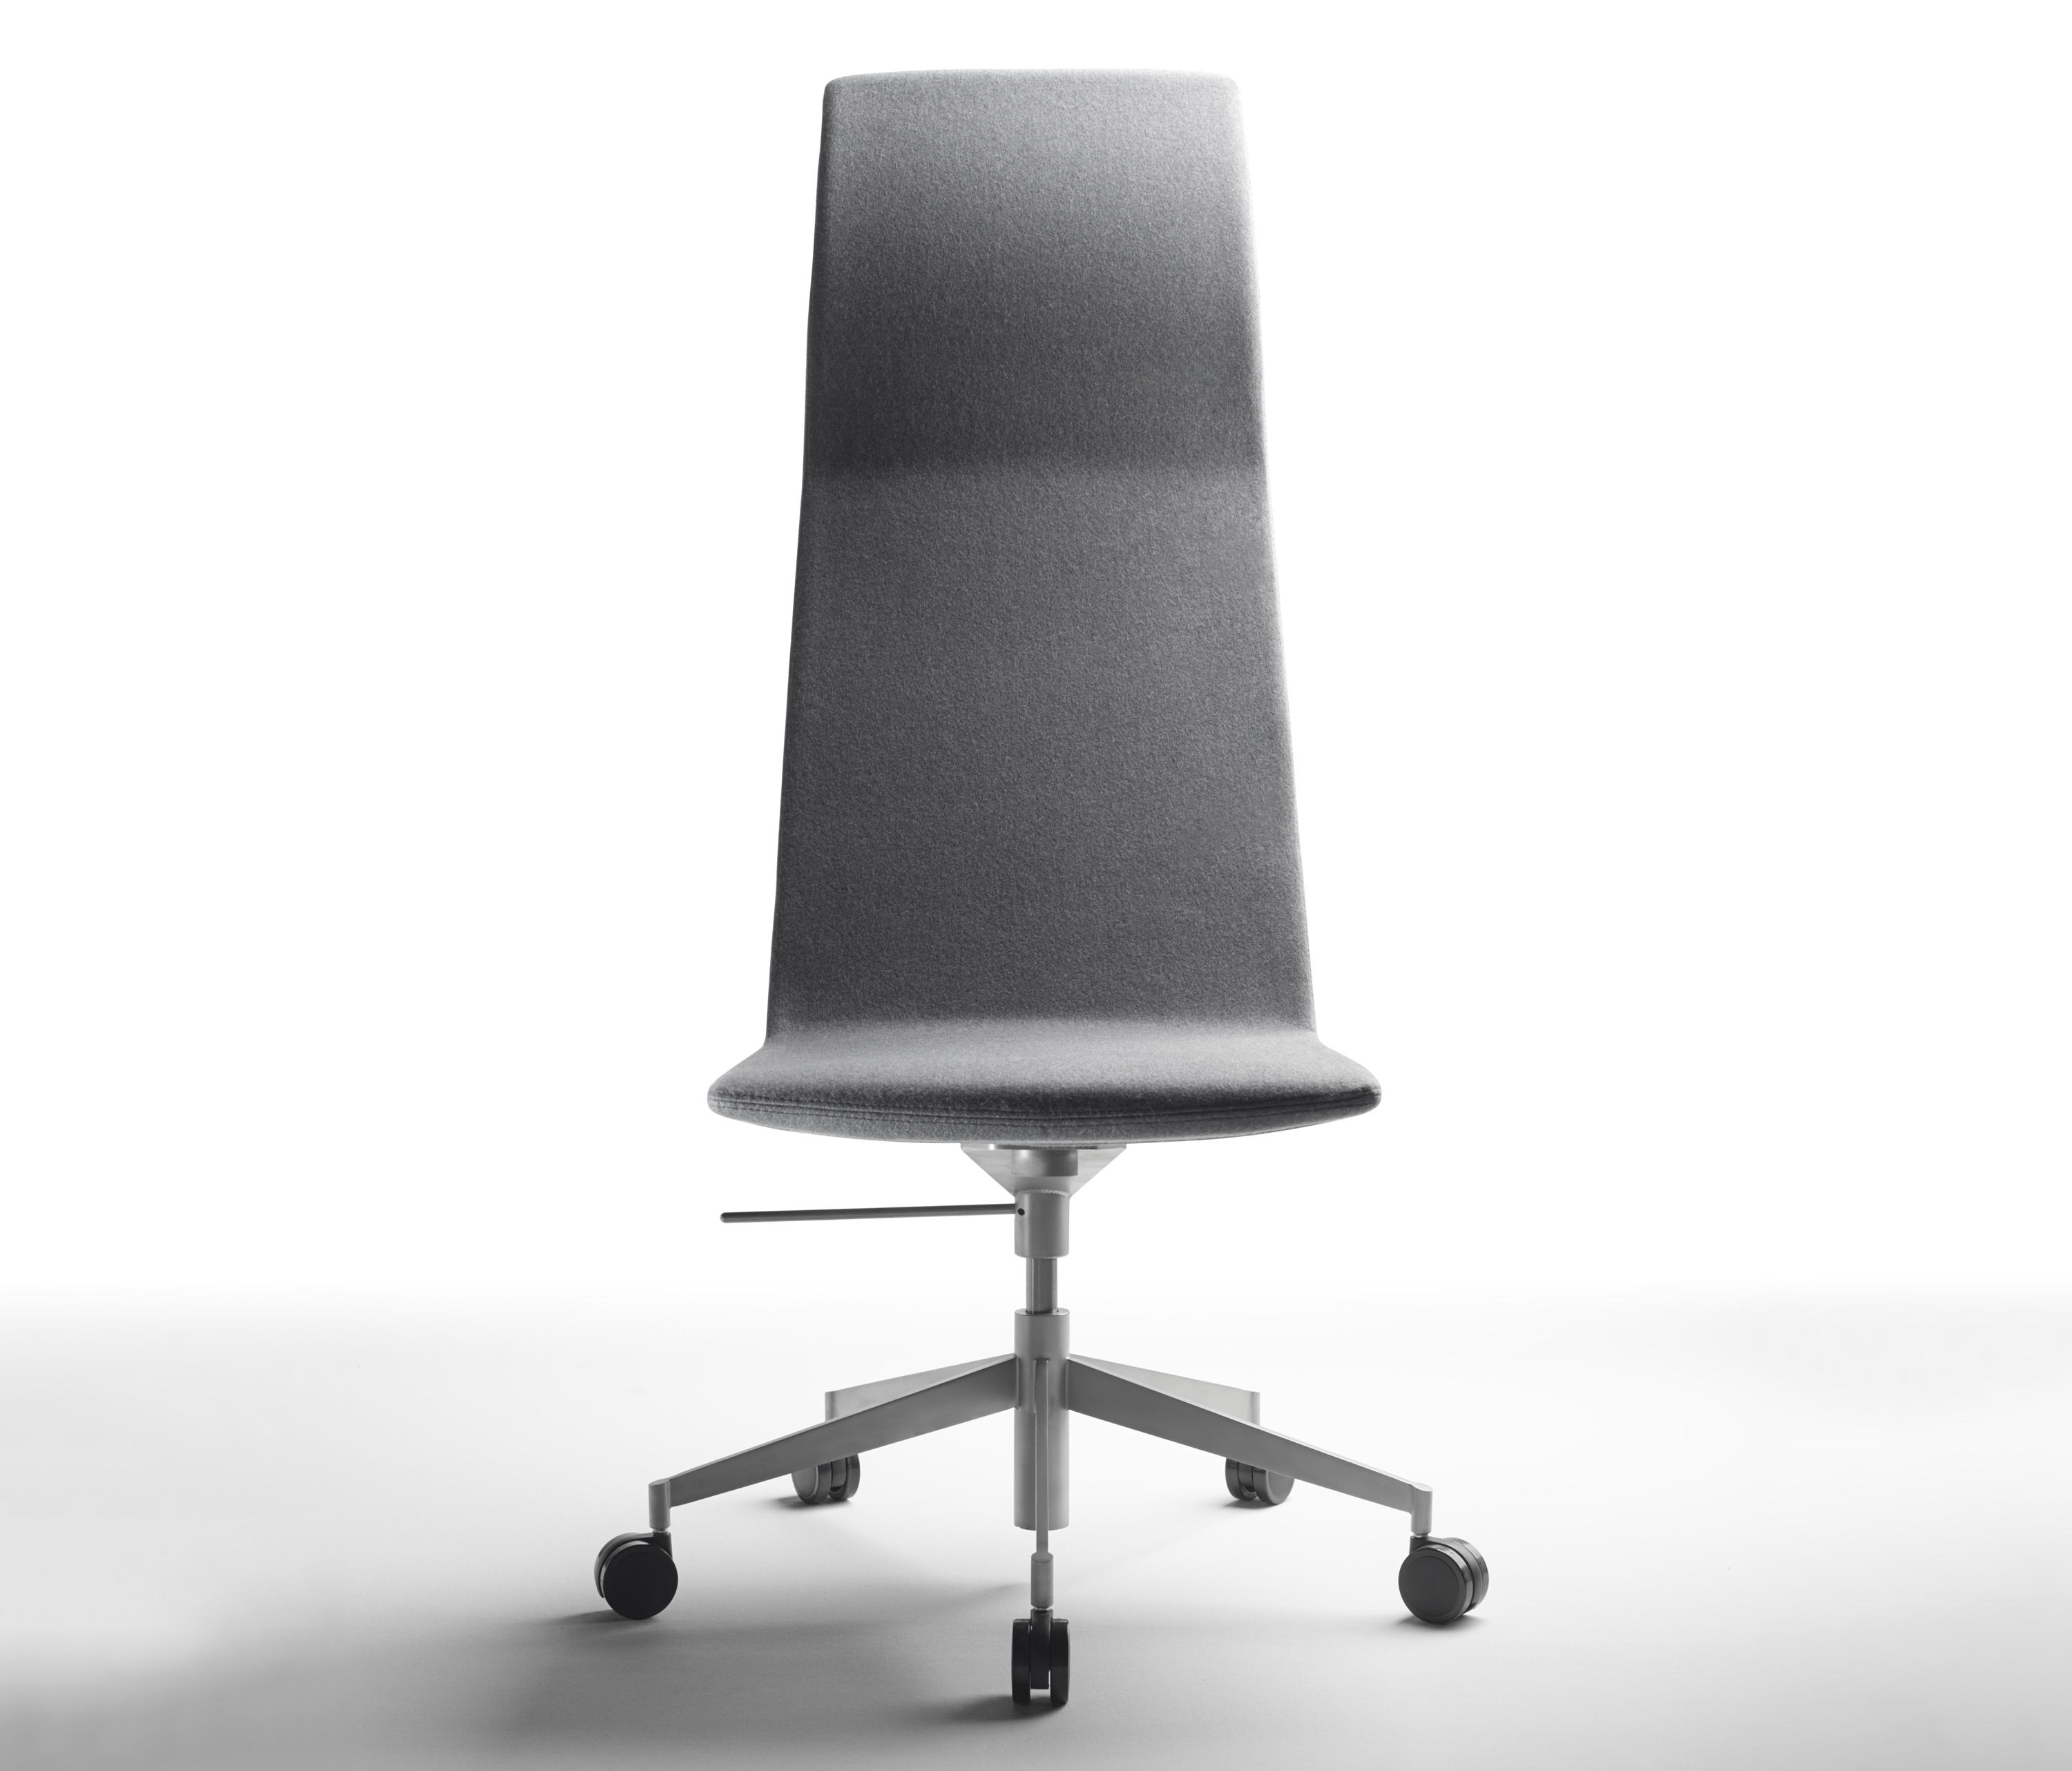 SWING Conference chairs from Sellex